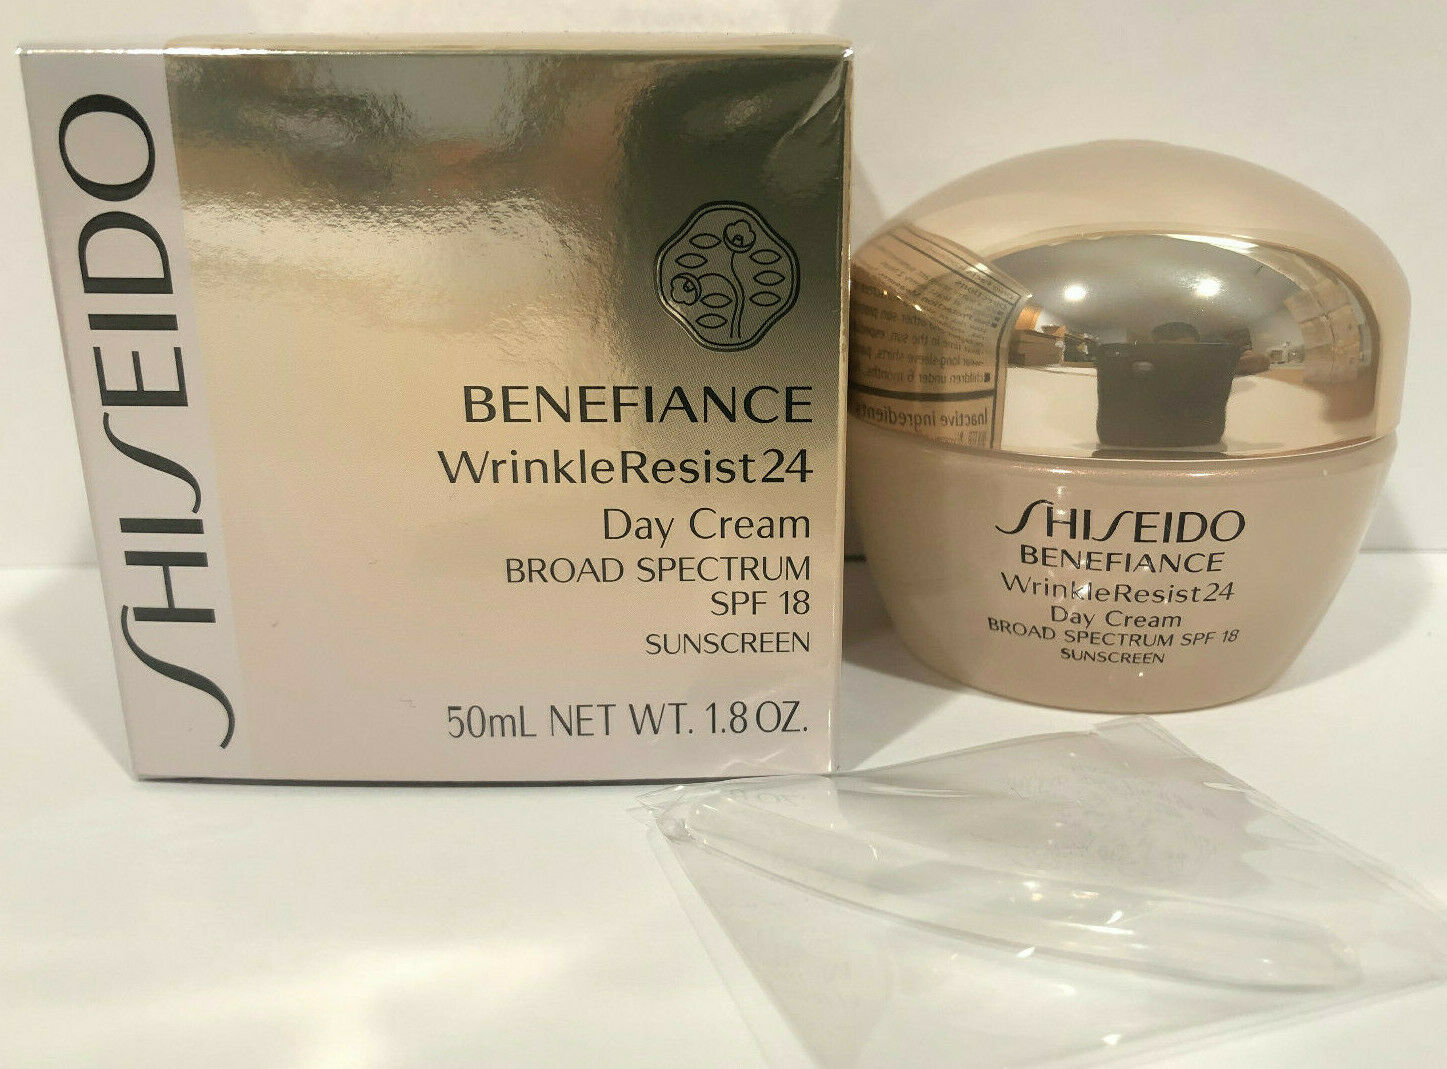 Shiseido SPF 18 Benefiance Wrinkle-Resist 24 Day Cream for U